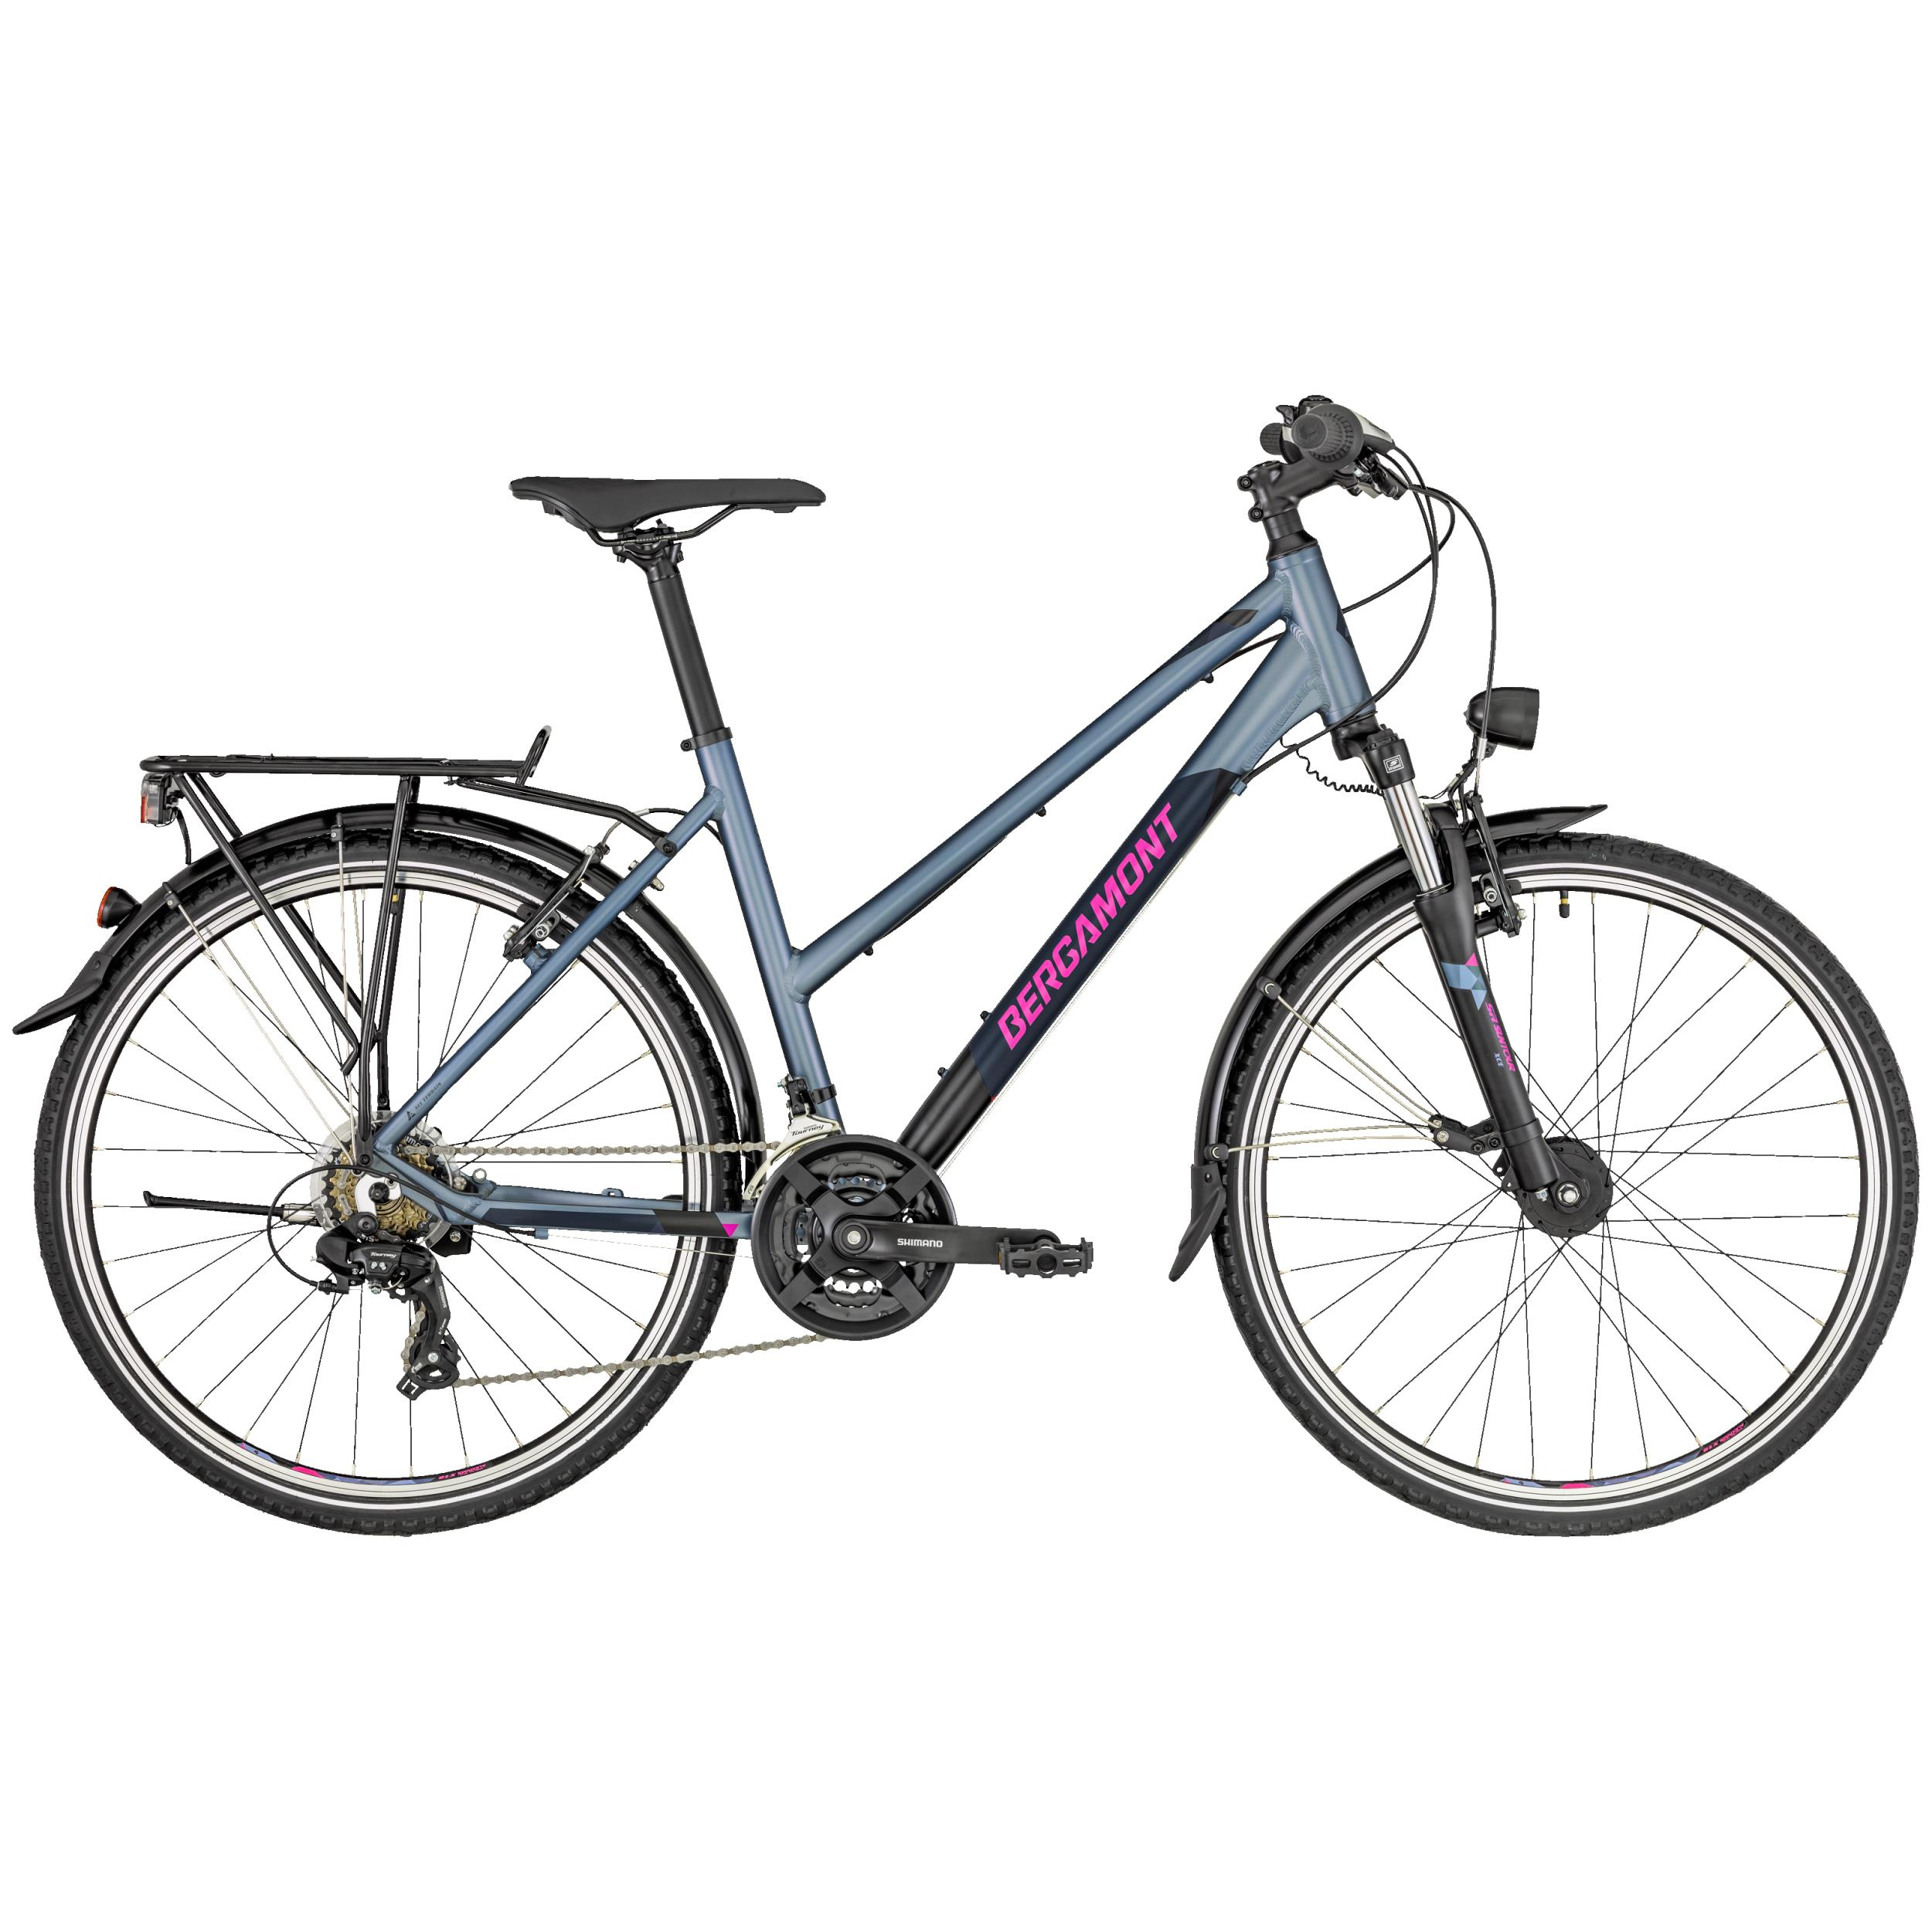 Bergamont Revox ATB 26 Lady silver/dark grey/berry (matt)